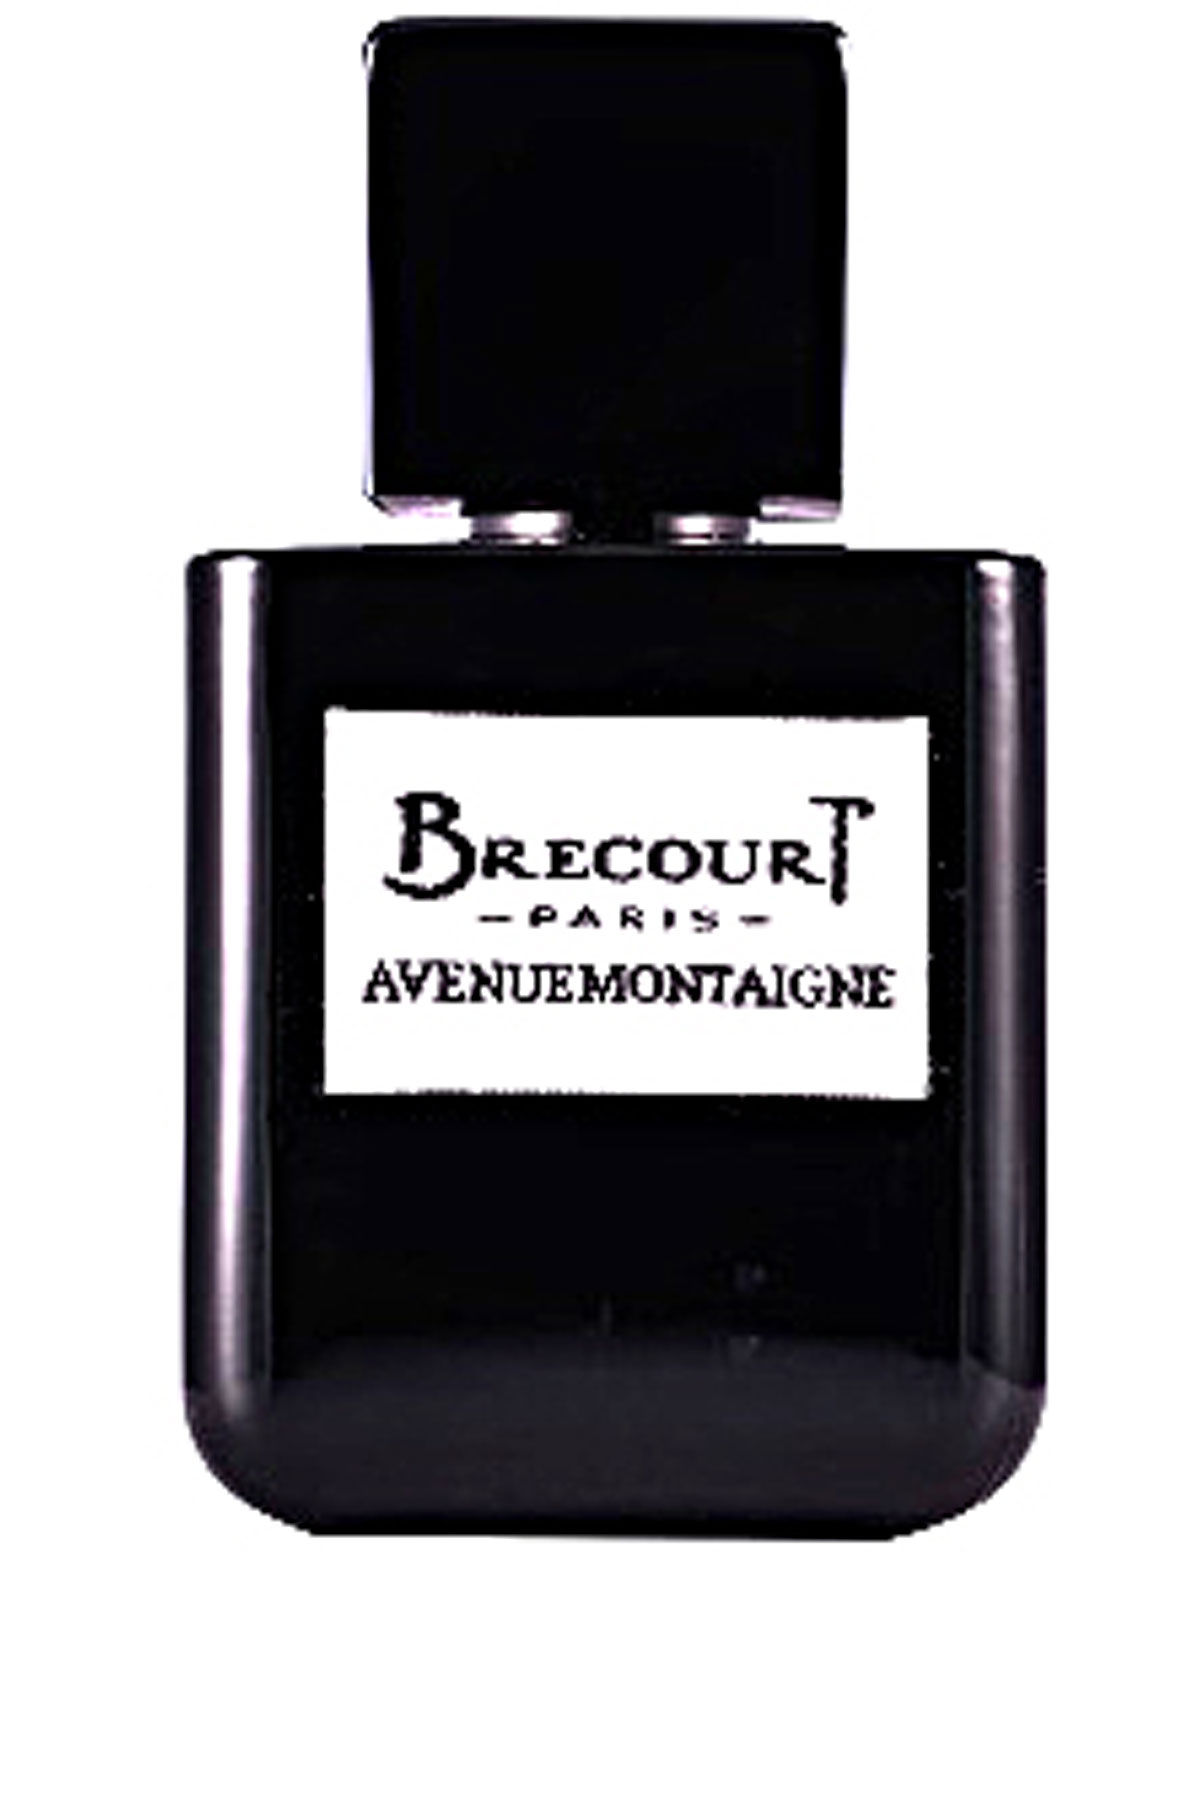 Brecourt Fragrances for Women, Avenue Montaigne - Eau De Parfum - 50 Ml, 2019, 50 ml